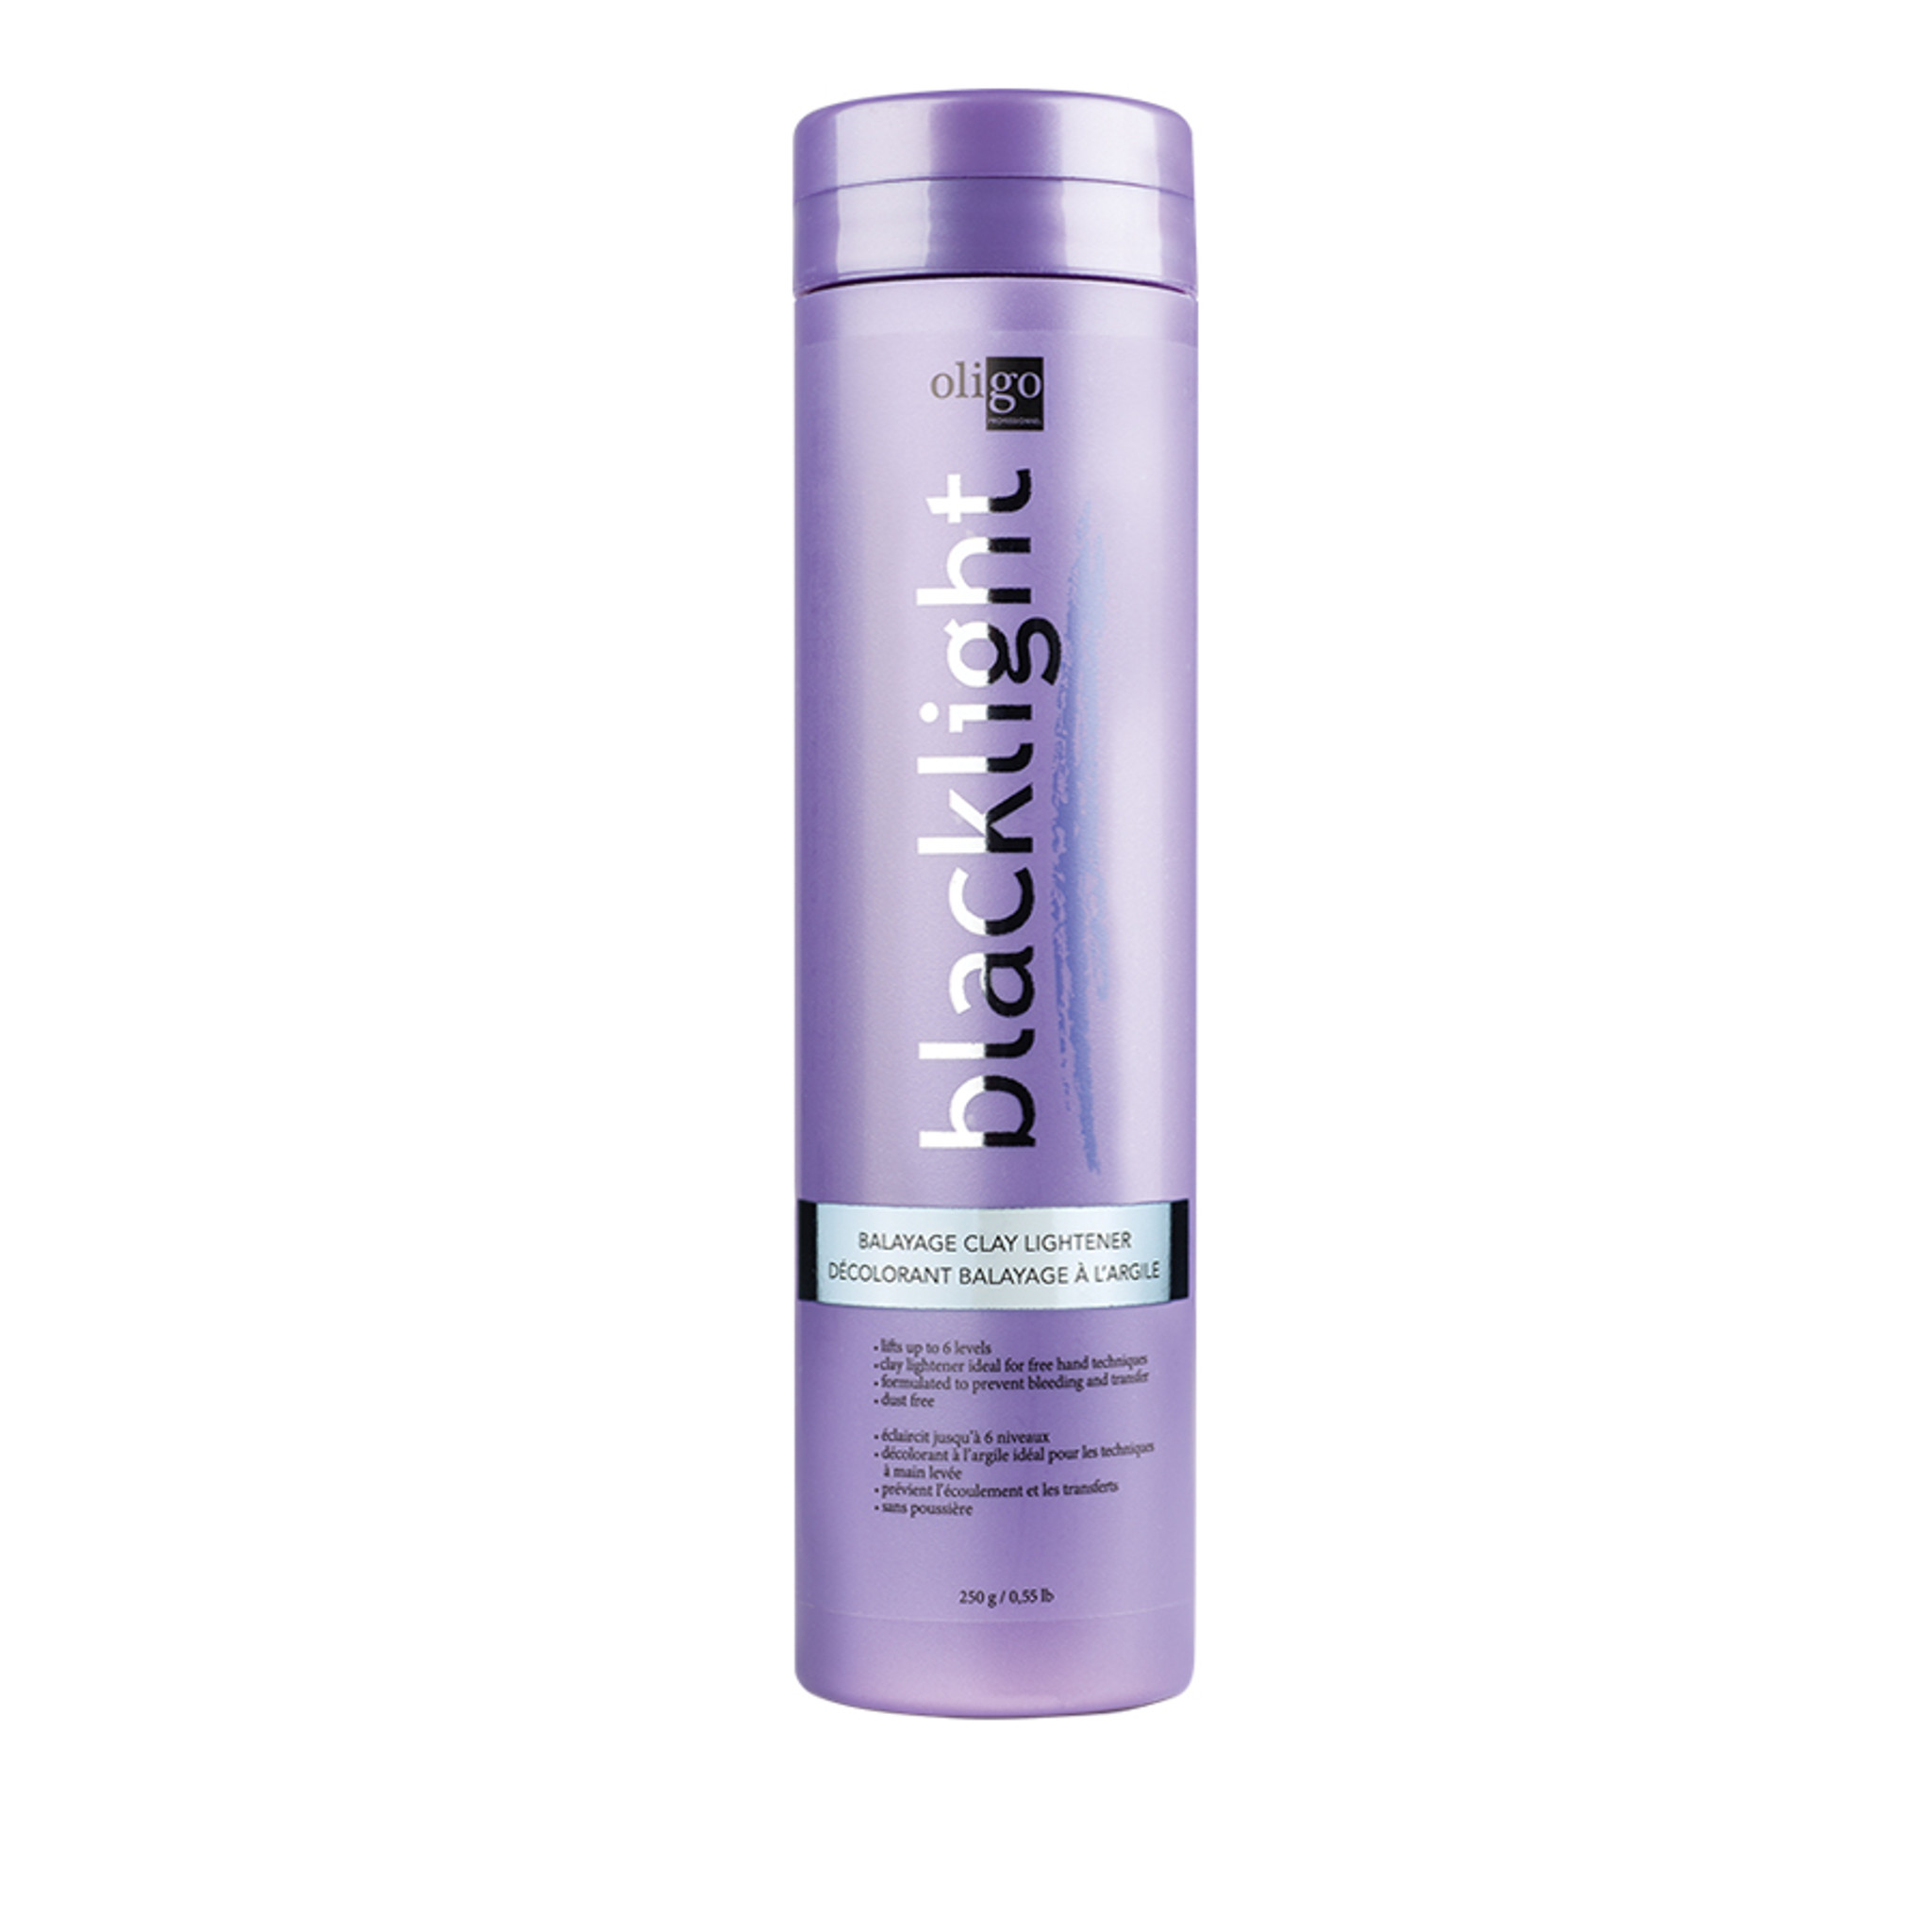 Oligo Pro Blacklight Balayage Clay Lightener 250g by Shop Salon Support - official distributor of Oligo in Australia, Hair & Barber Barbershop Trade Wholesale Hairdressing Supplies Melbourne Australia